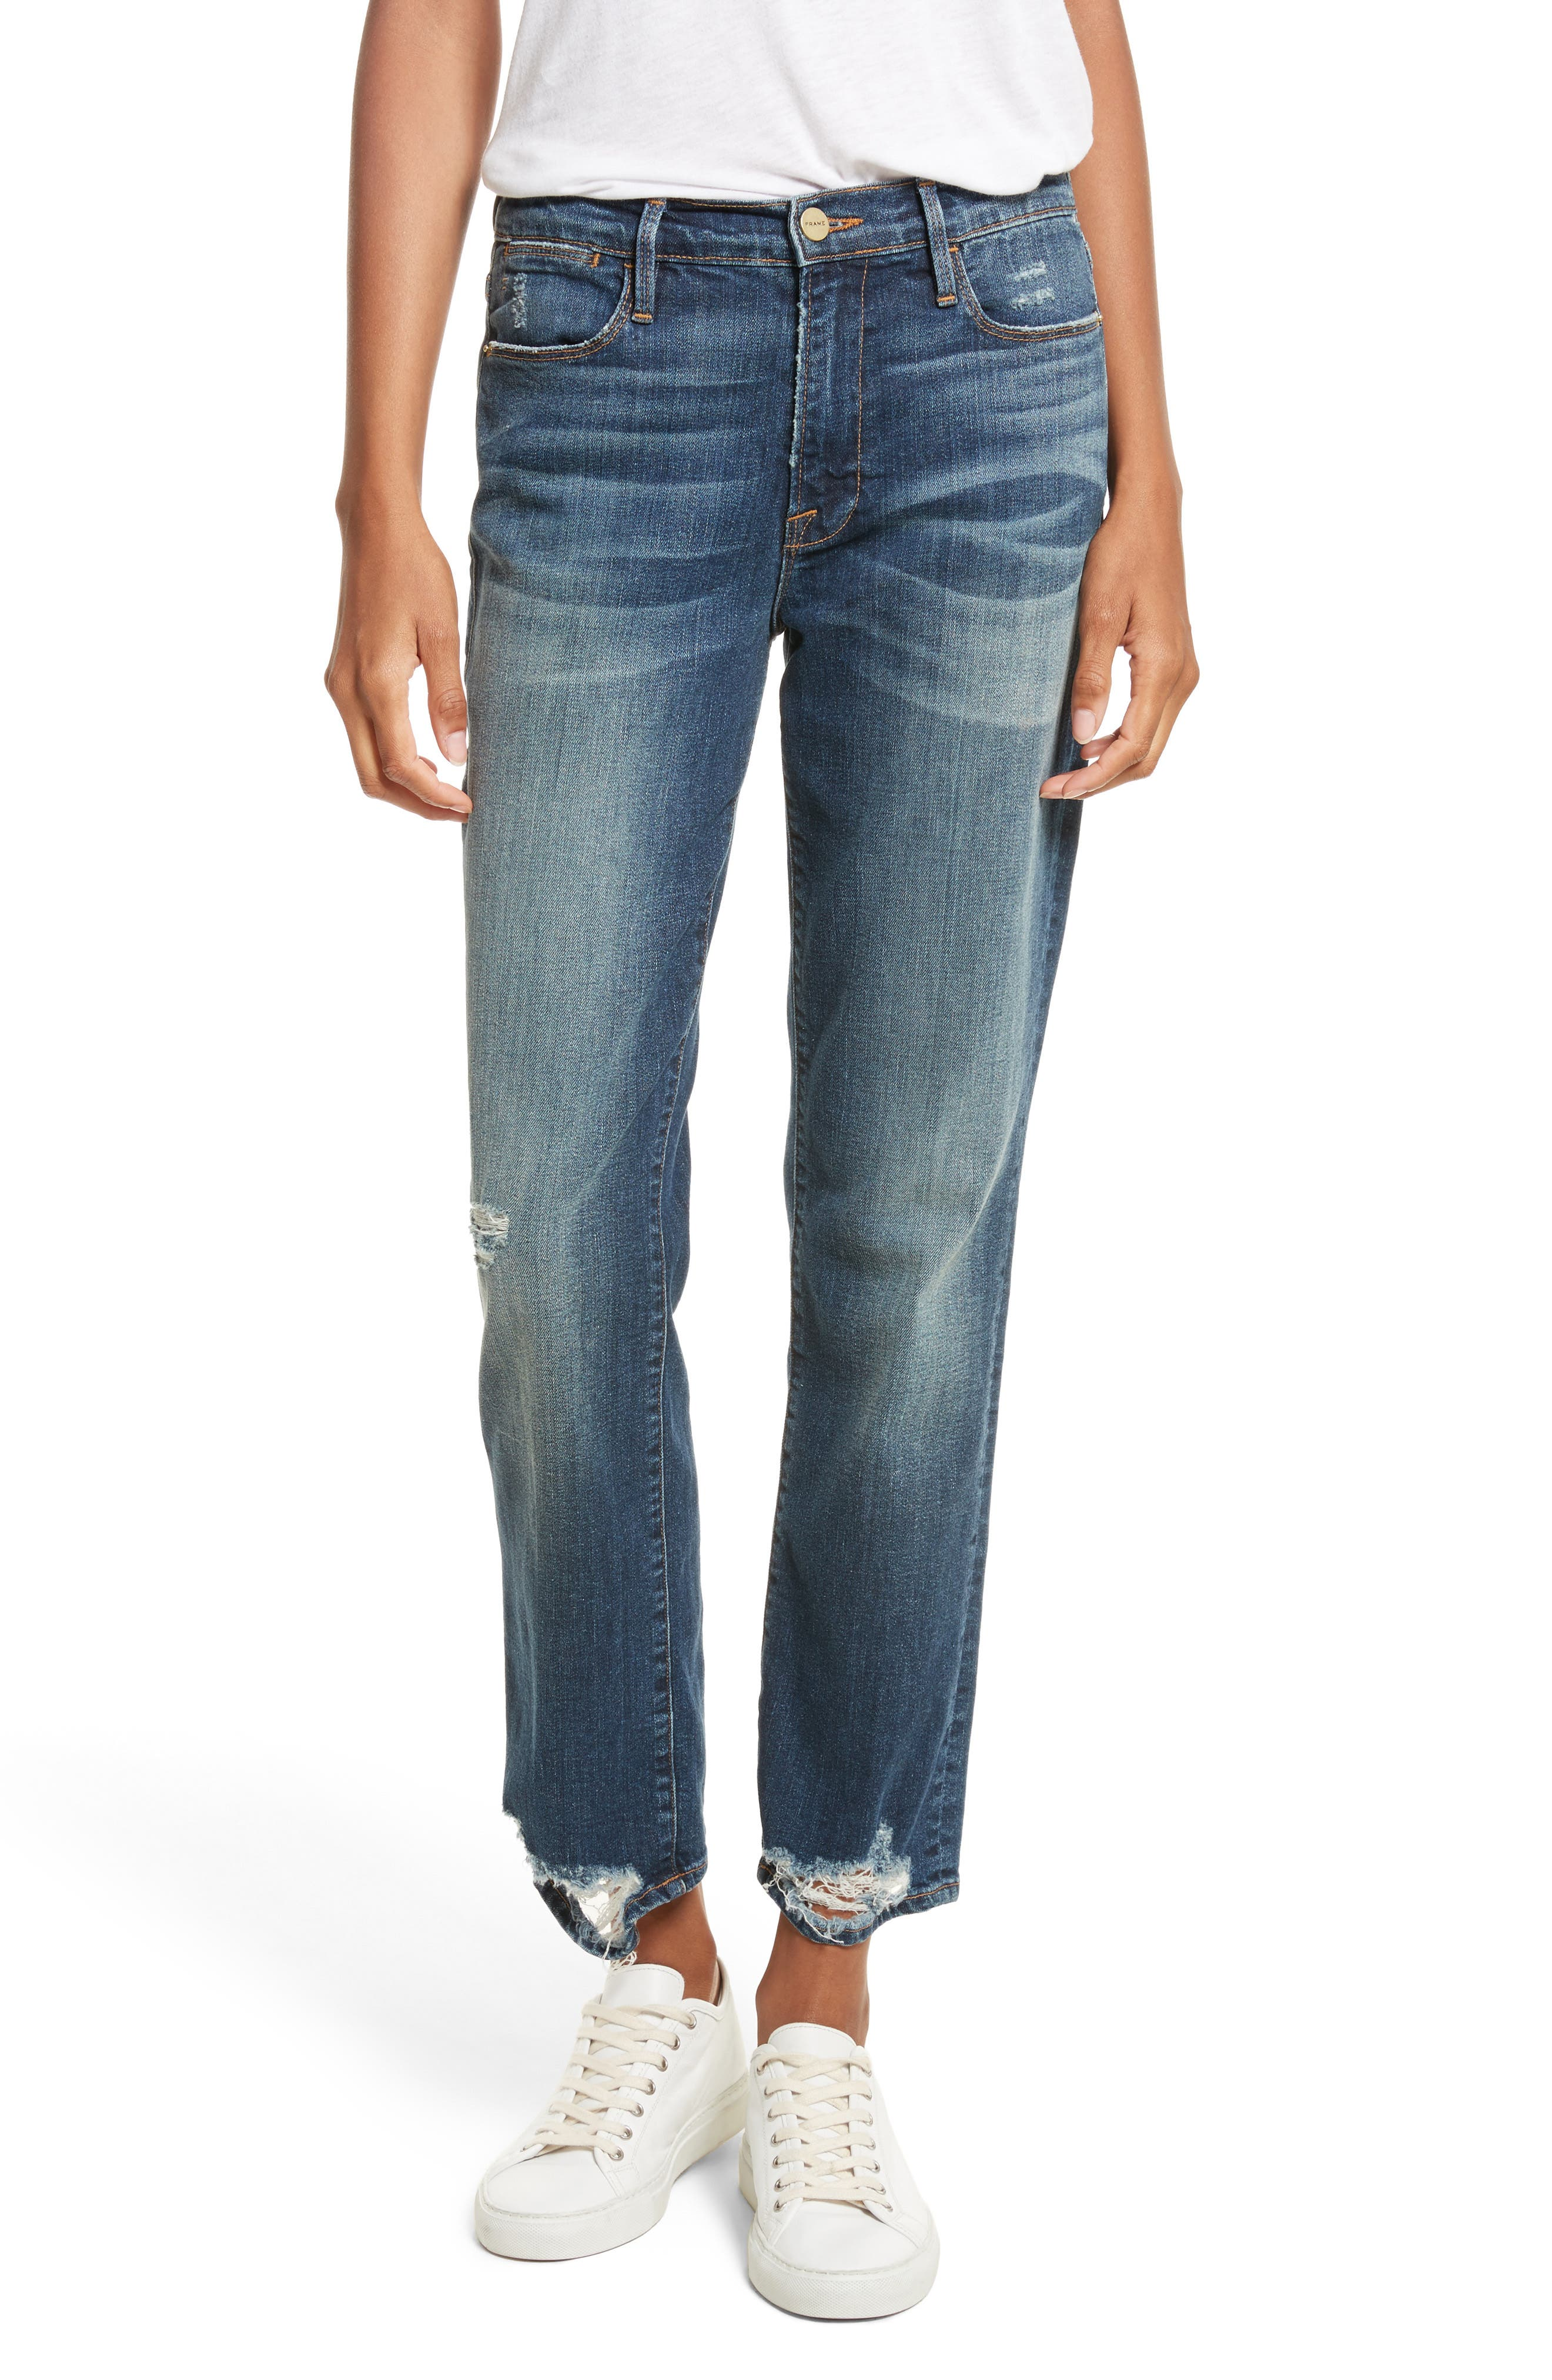 Le High Straight High Rise Jeans,                         Main,                         color, 402